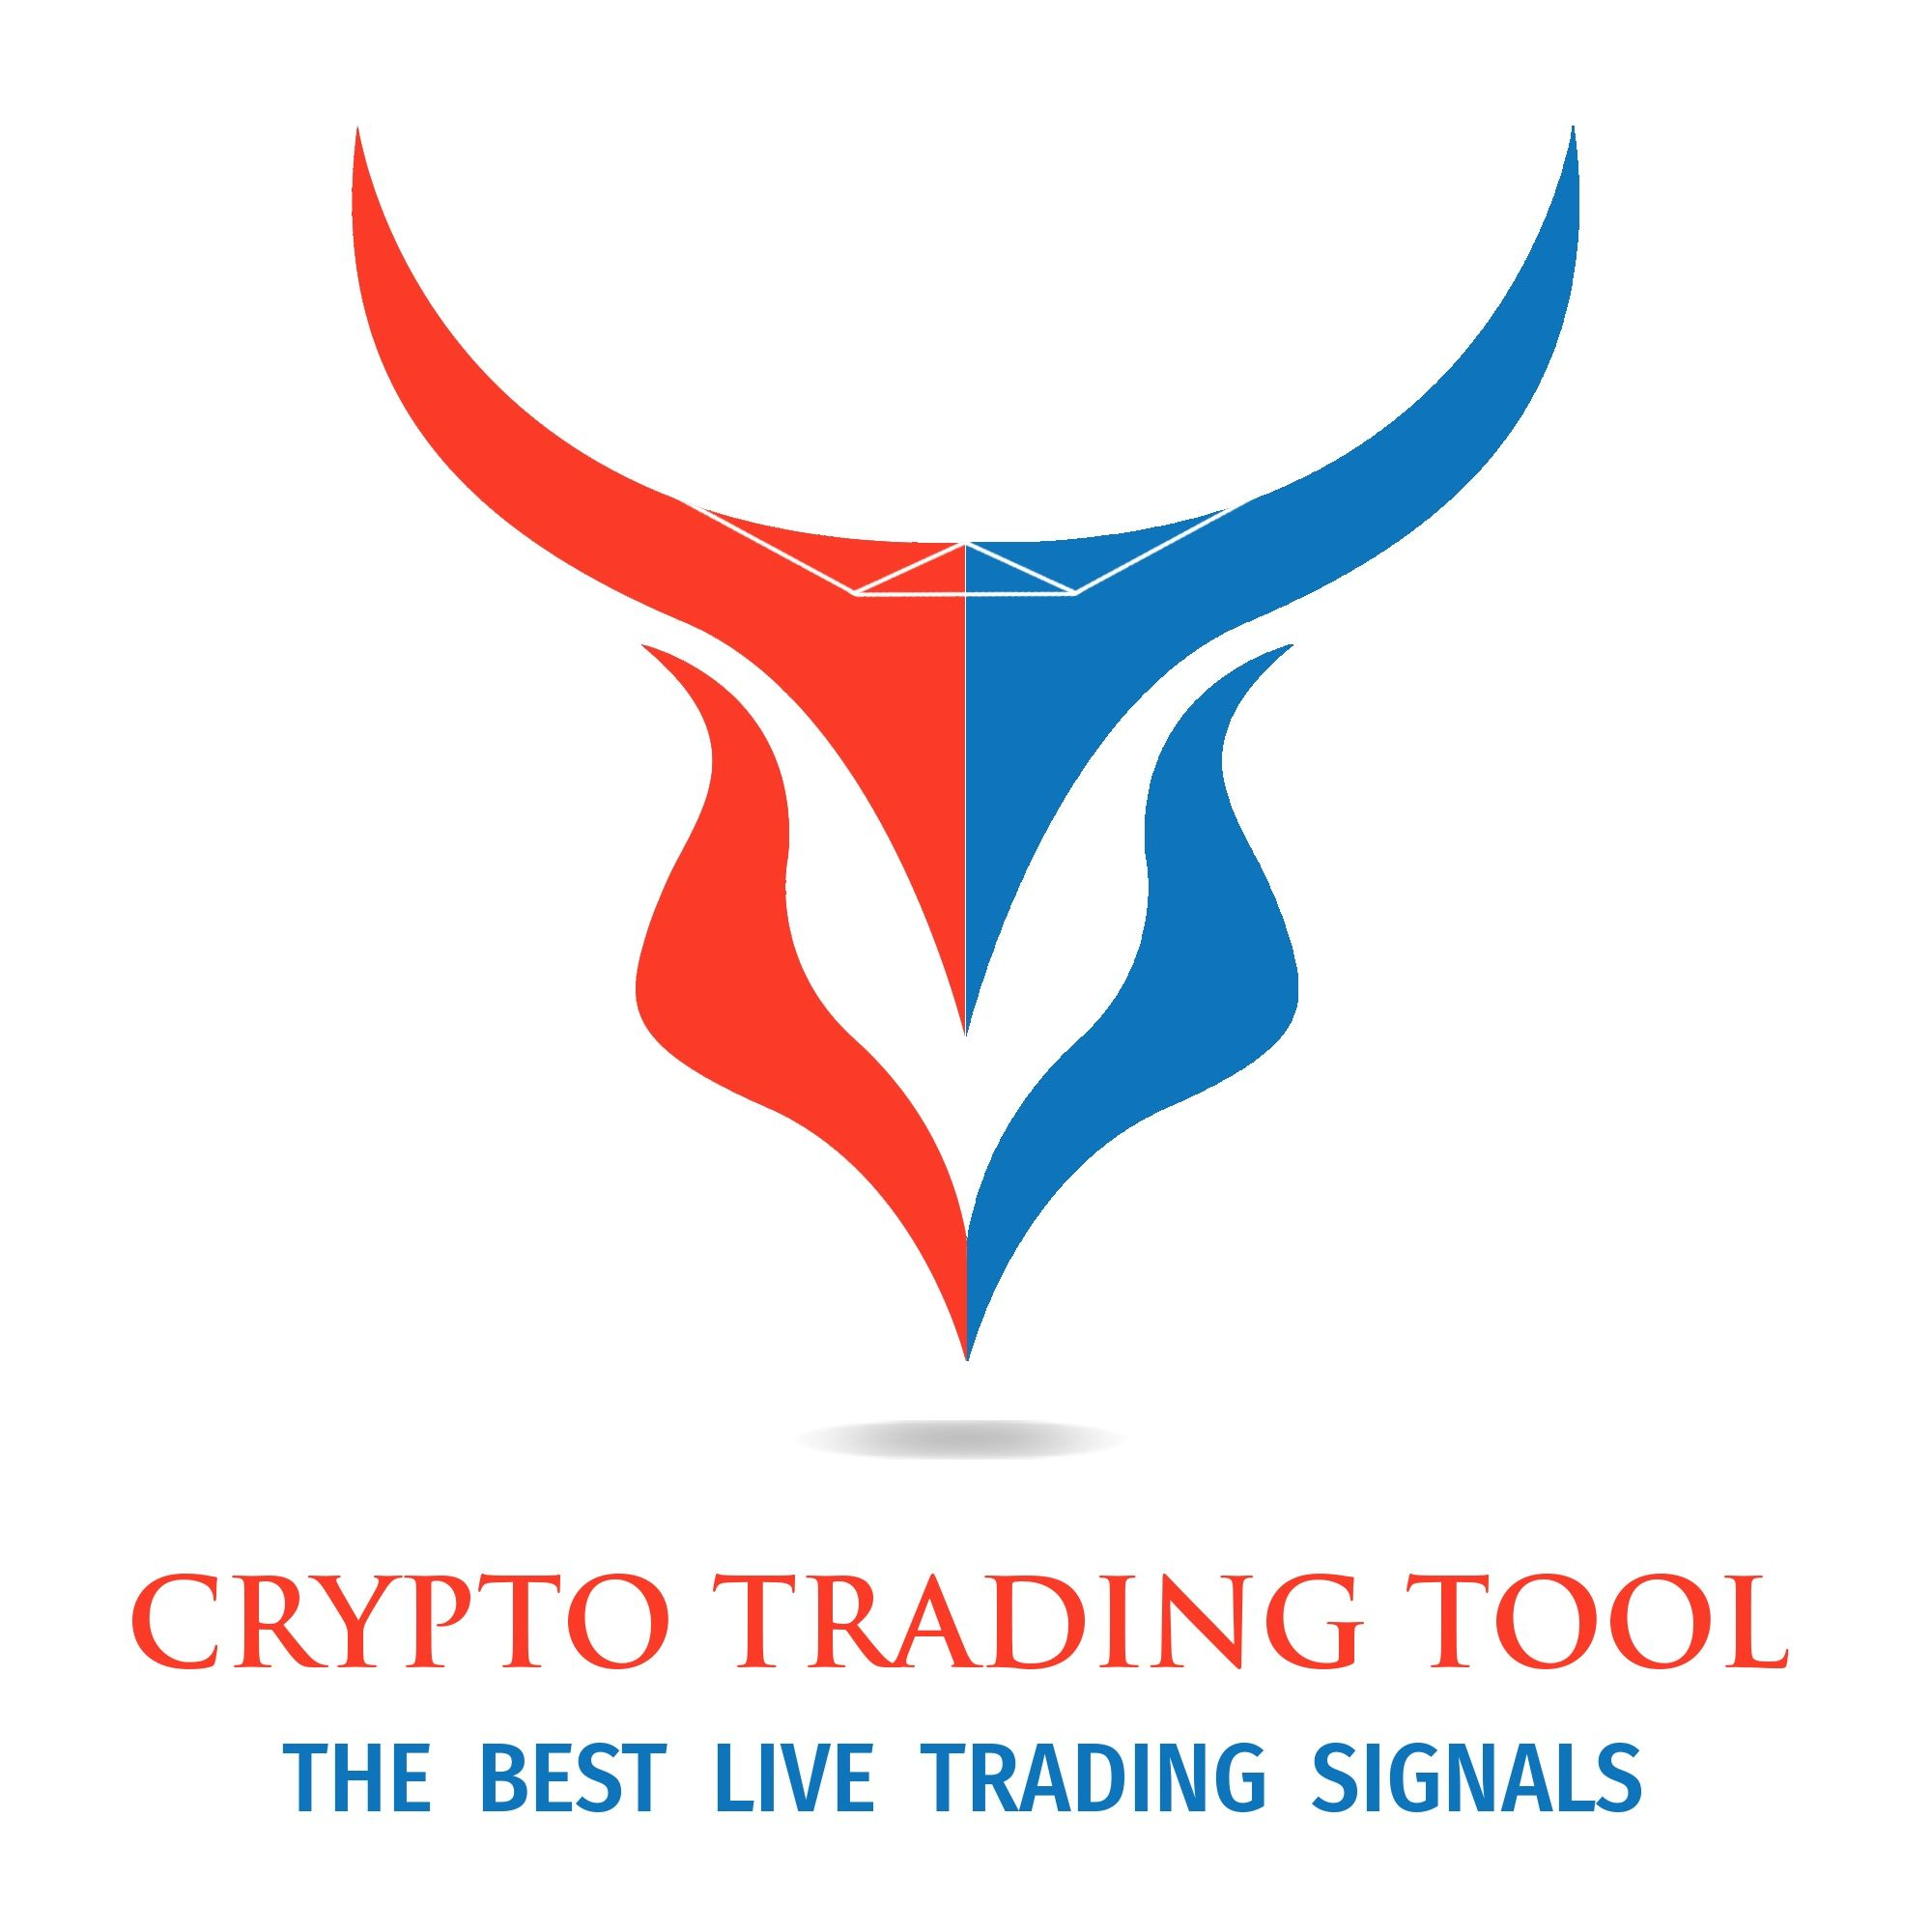 which is the most reliable cryptocurrency trade signals